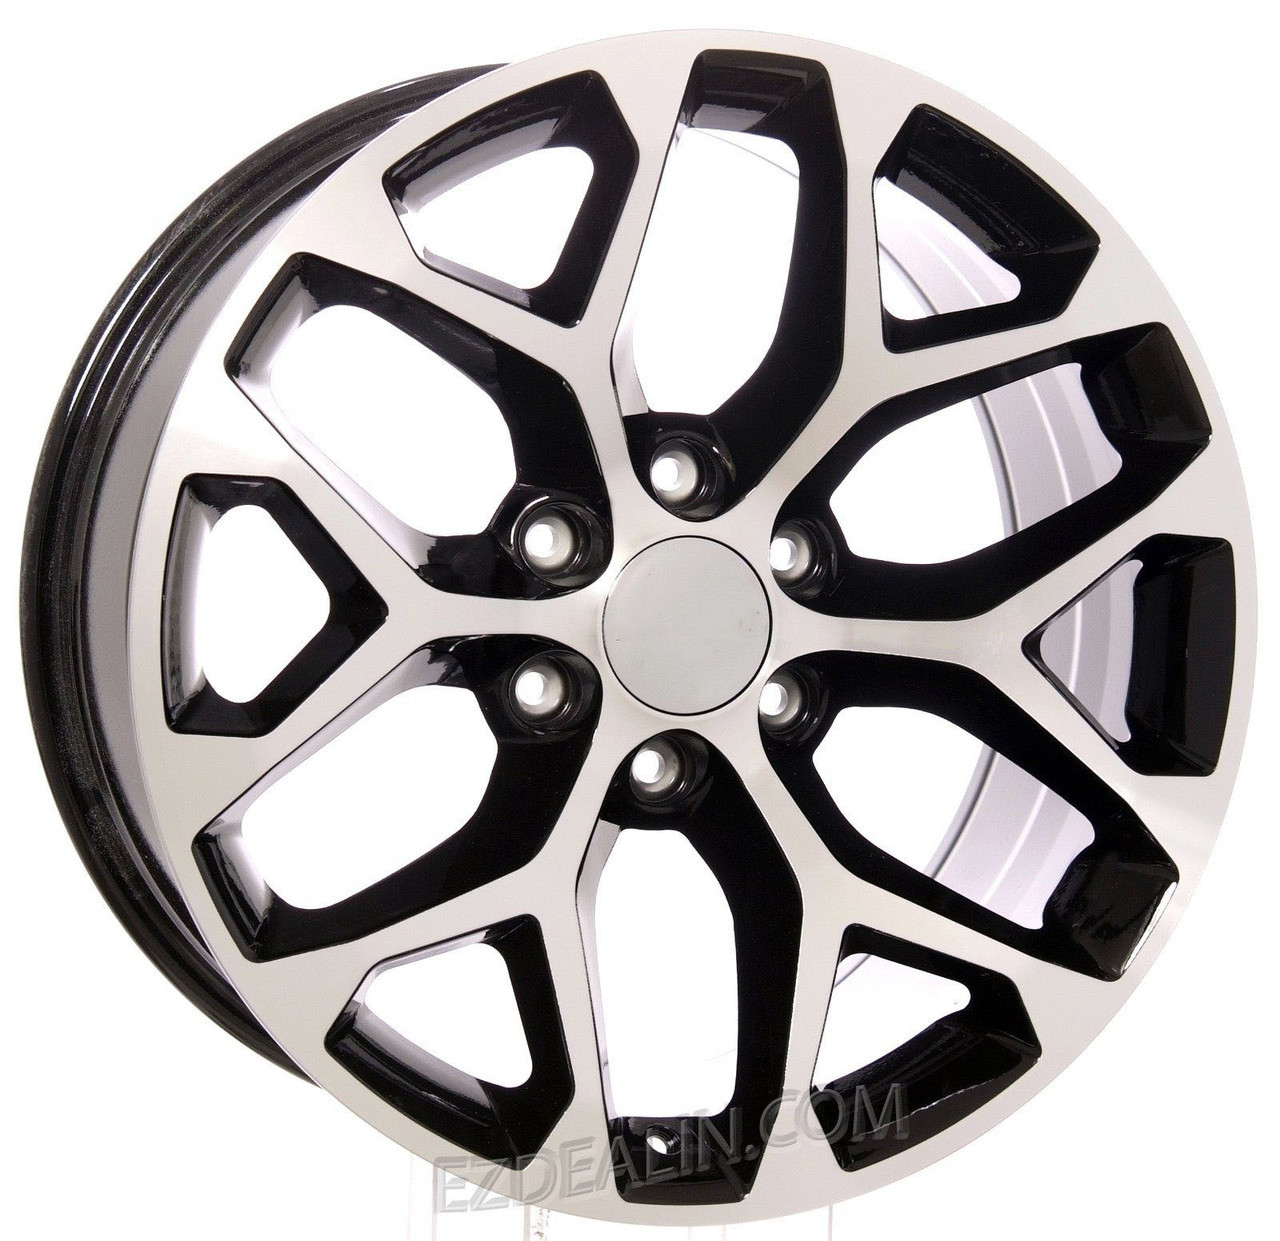 cfm newer gmc stock asking drive parts call inc gmcchevrolet at us tires chevrolet wheels fits accessories questions give en ia trucks fort dodge a autodrive with any auto and